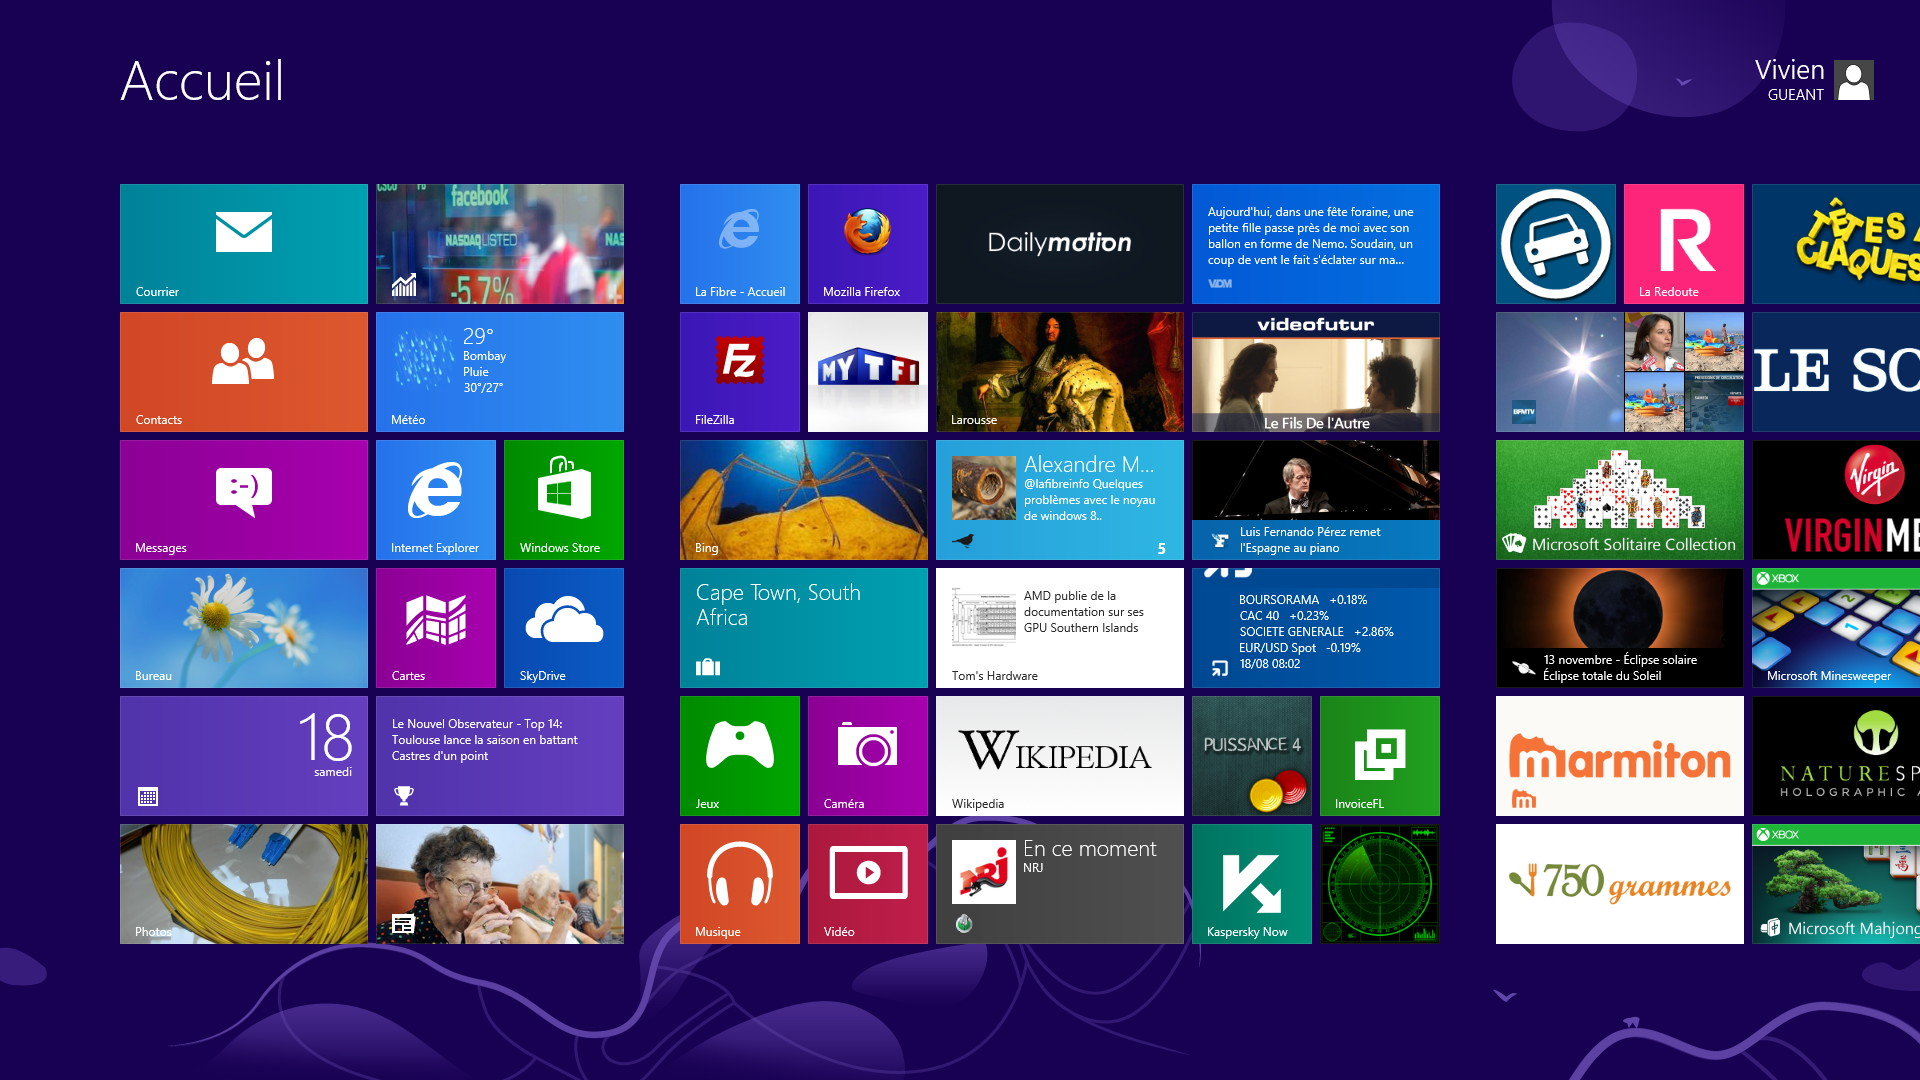 fenetre windows 8 images ForFenetre Windows 8